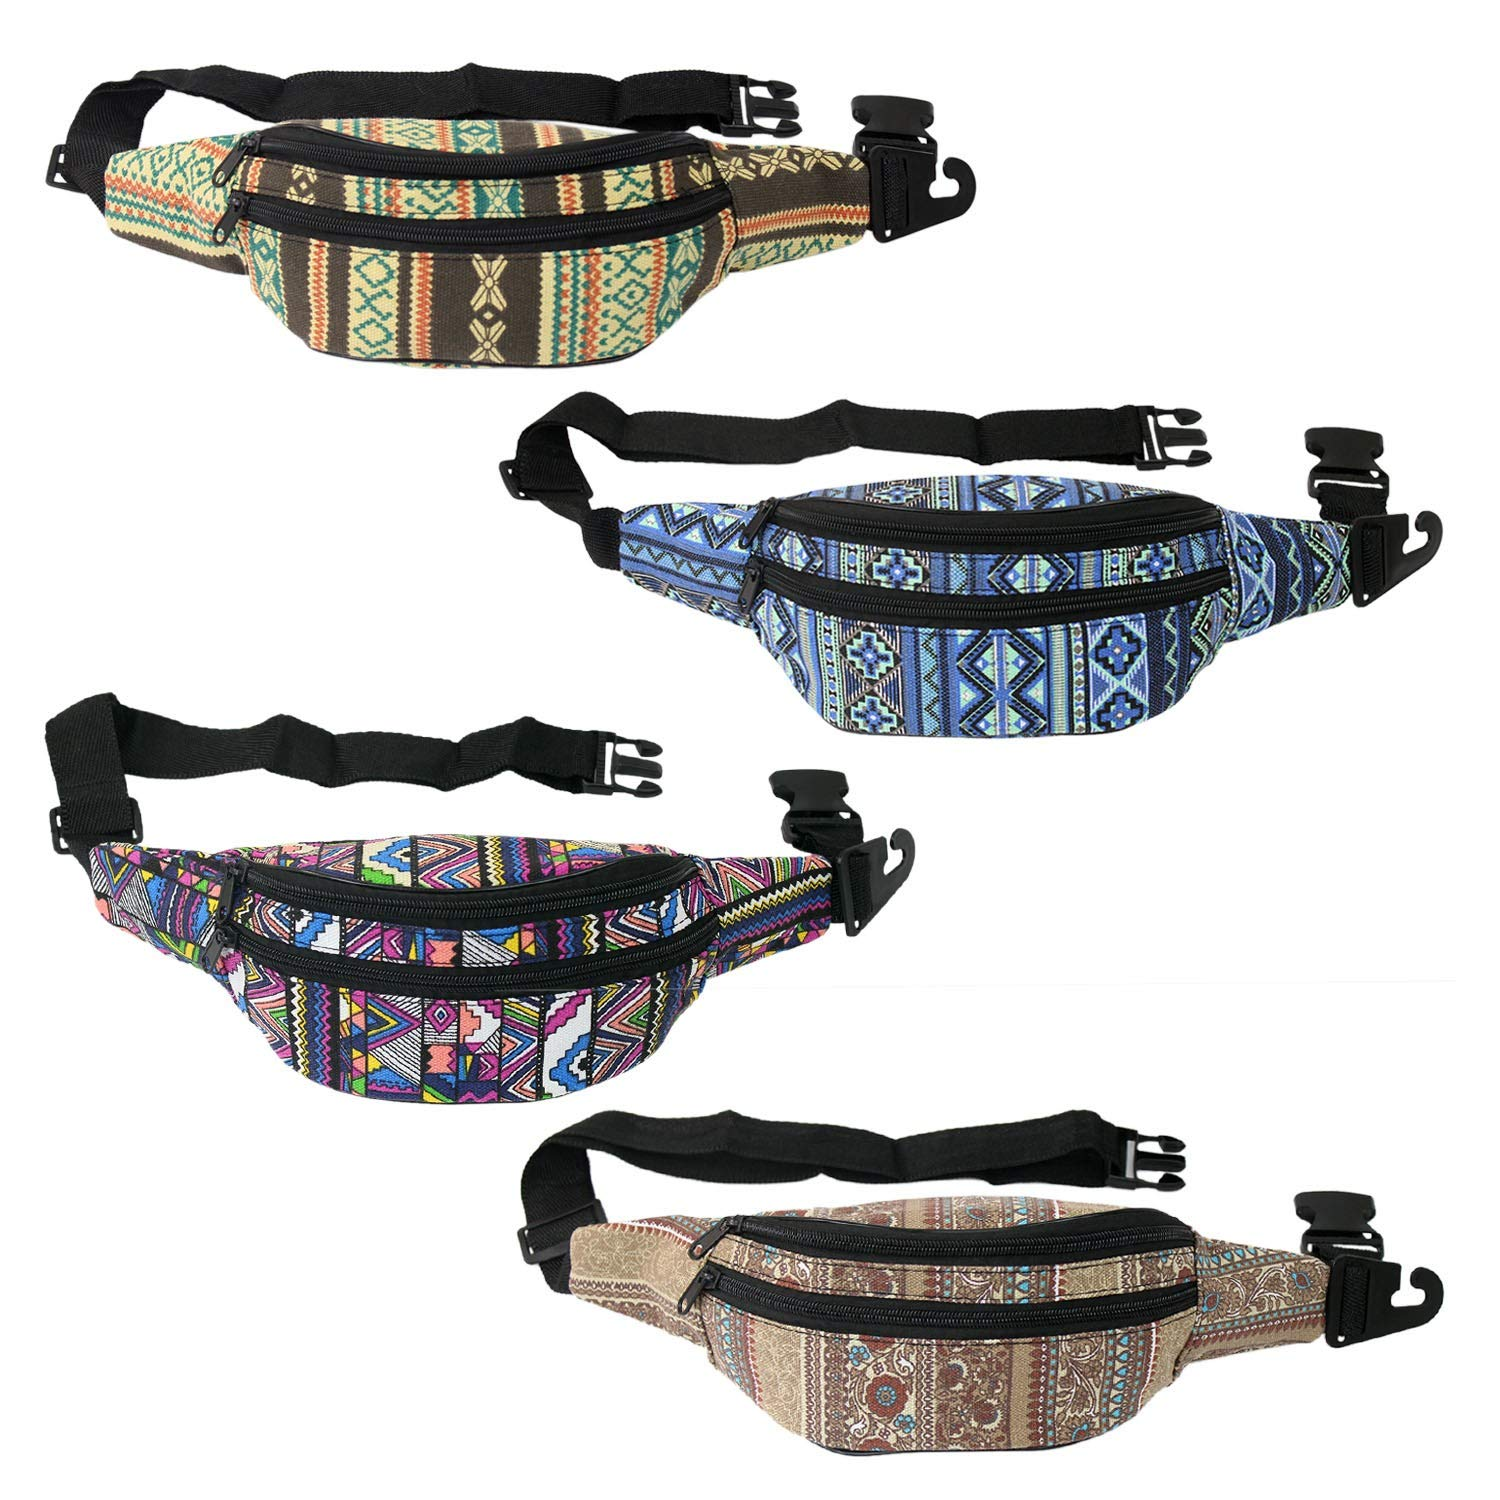 Wholesale Men's, Women, Cute Travel Fanny Pack in 4 Assorted Canvas Prints - for festivals and raves - Bulk Case of 24